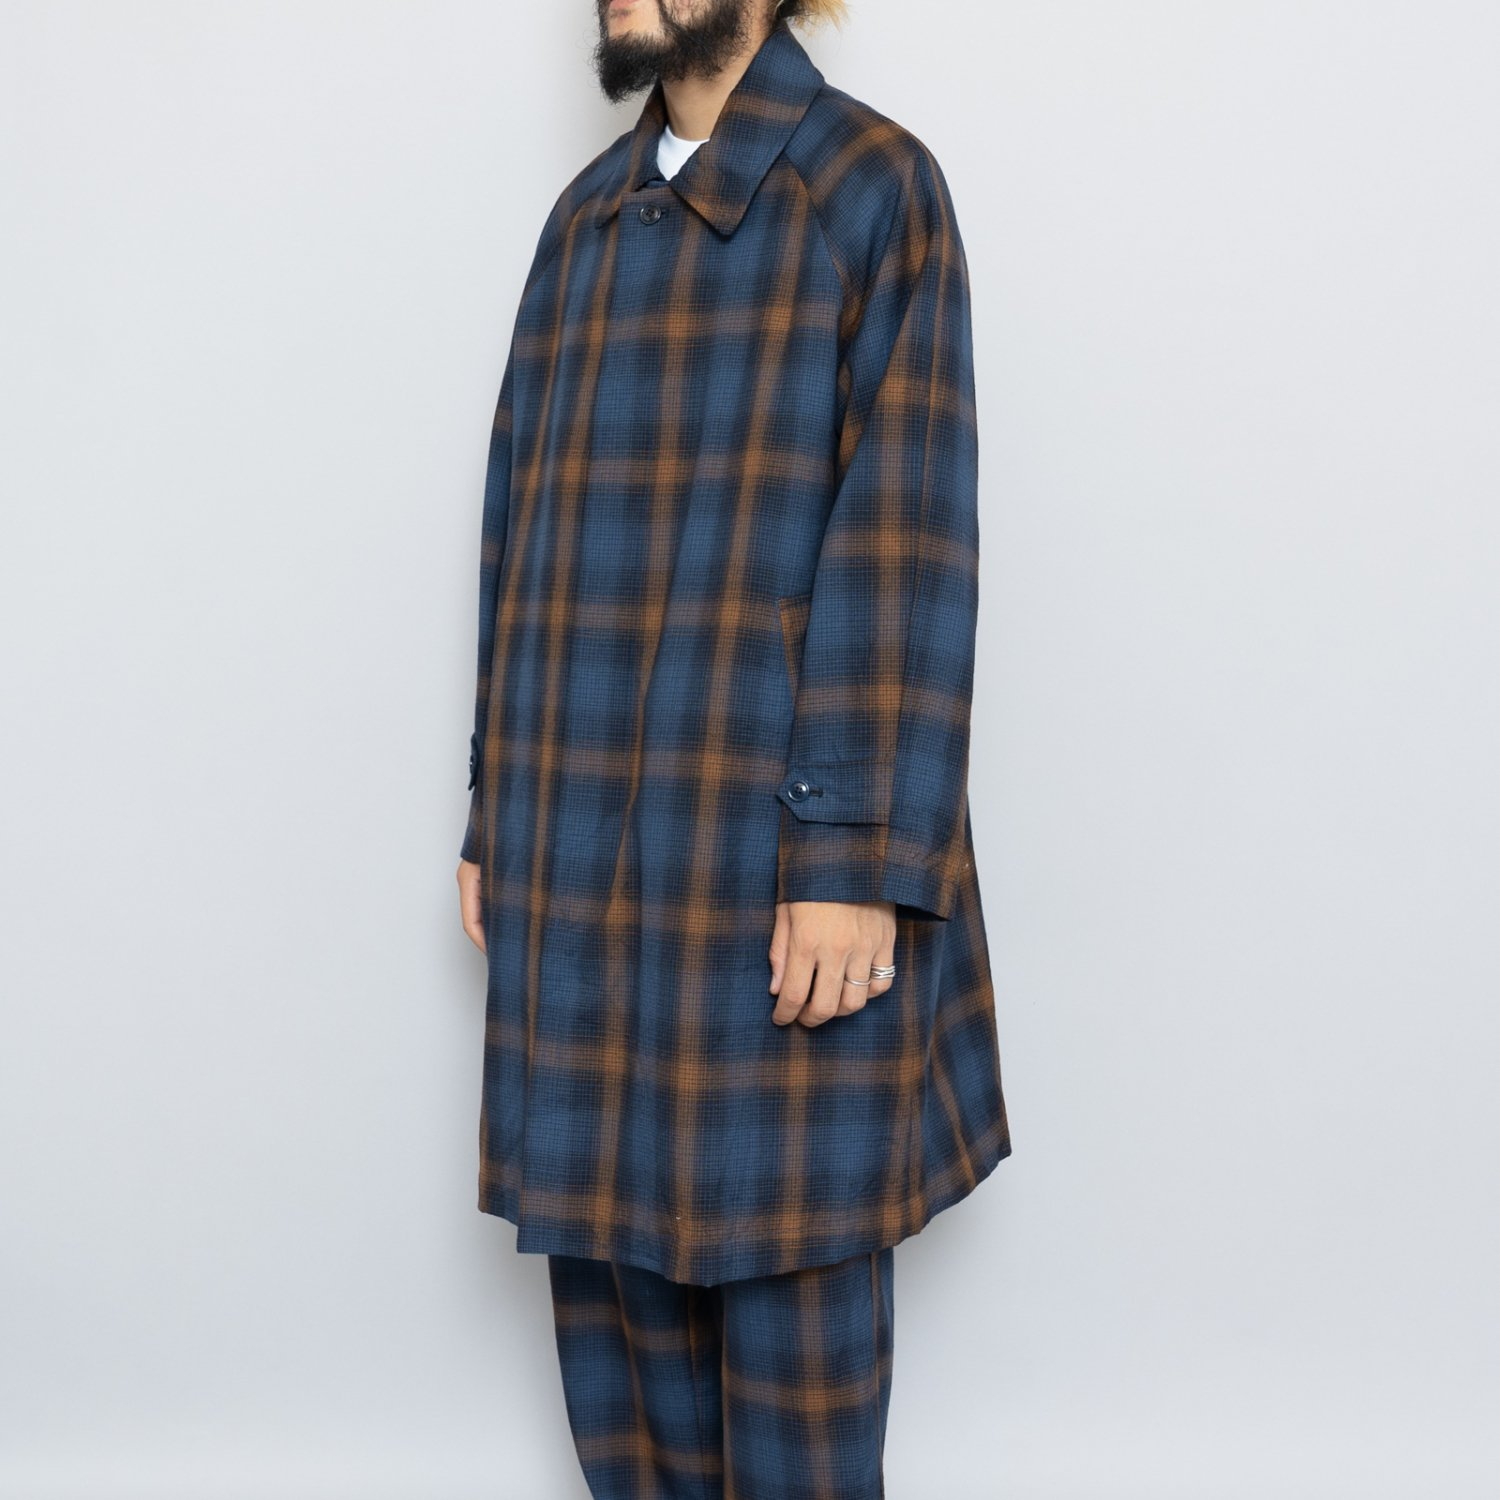 ts(s) * Ombre Plaid Wool Cloth Collarless Fly Front Raglan Sleeve Coat * Navy